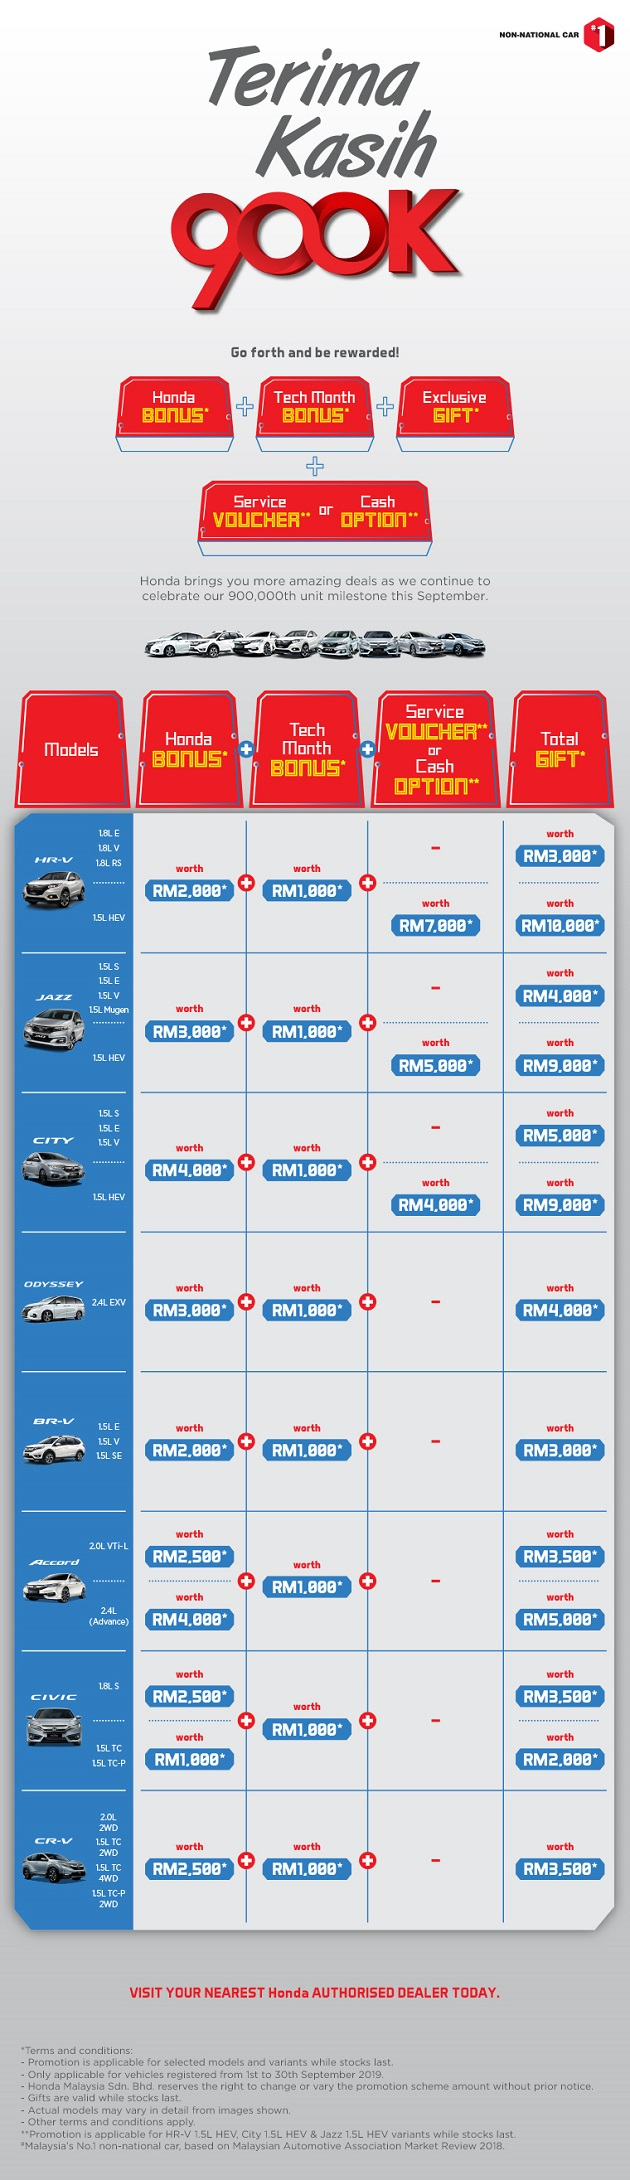 Honda September Promotion 2019 Discount